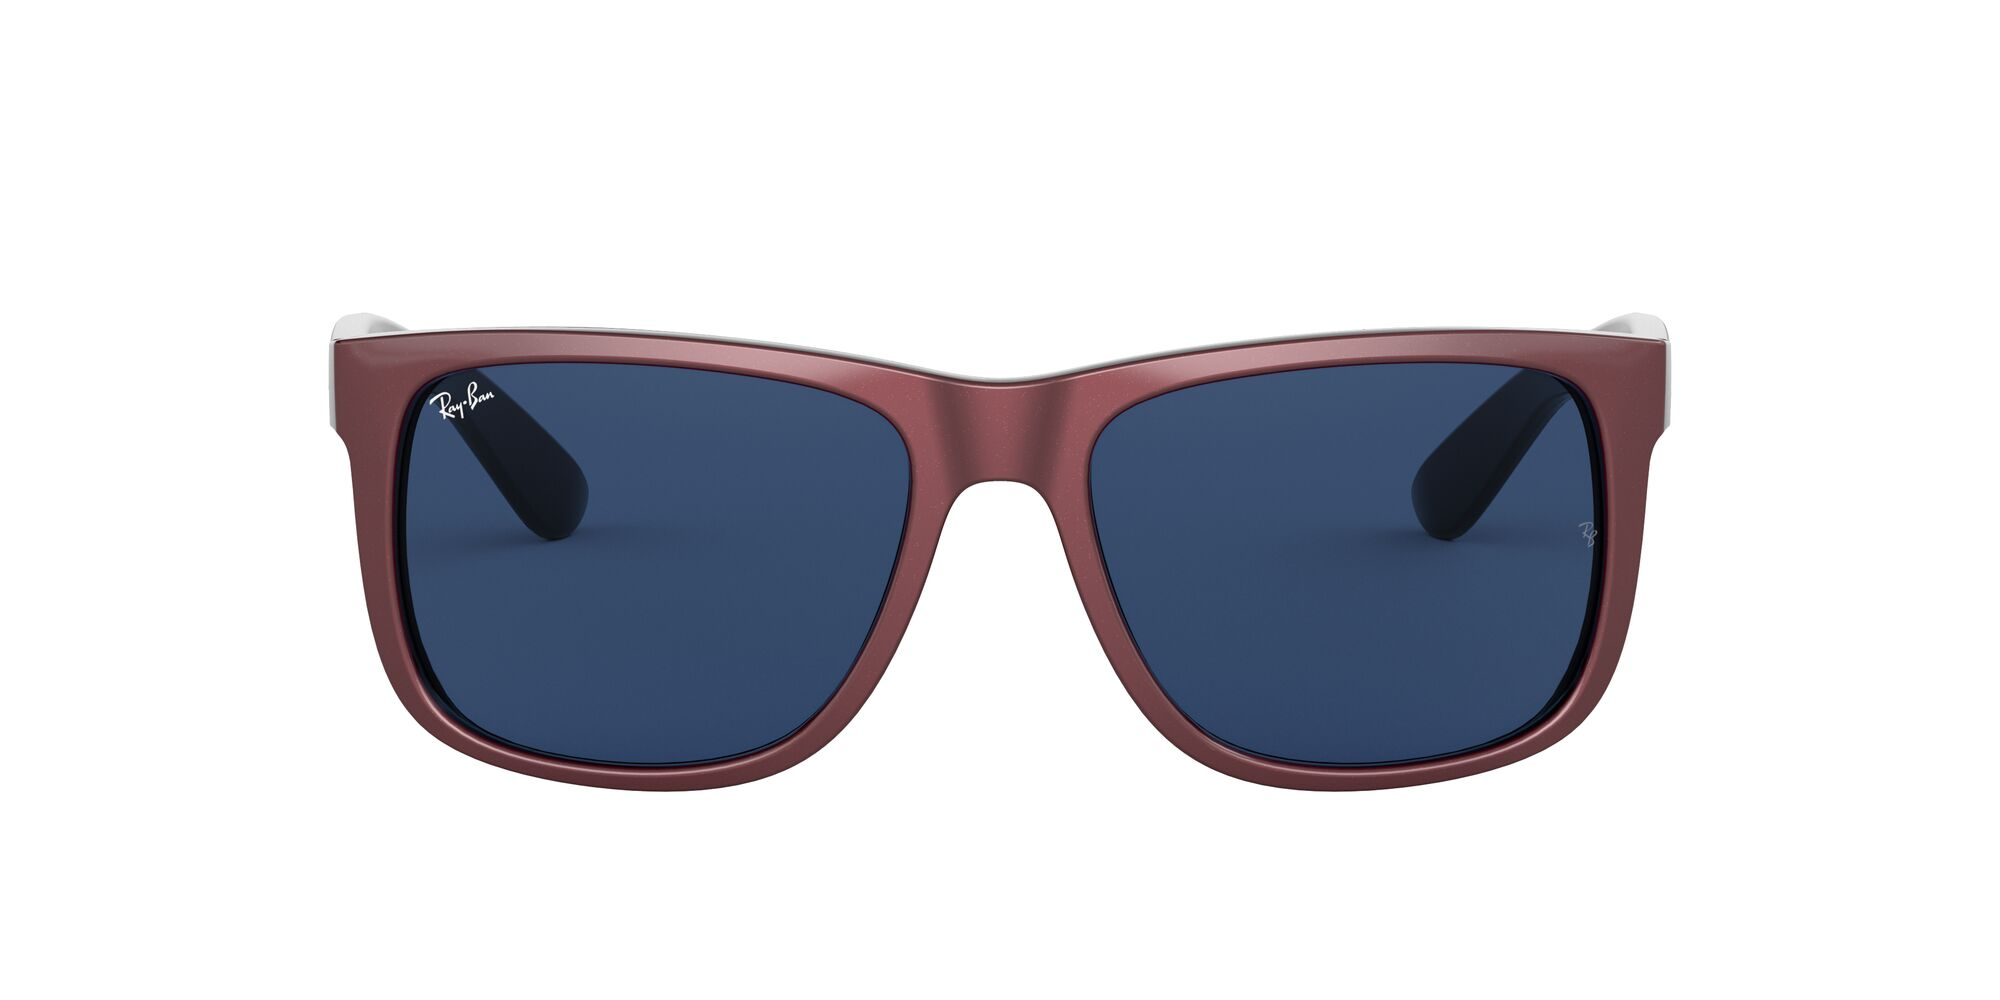 Front Ray-Ban Ray-Ban 0RB4165 646980 53/16 Rood/Blauw